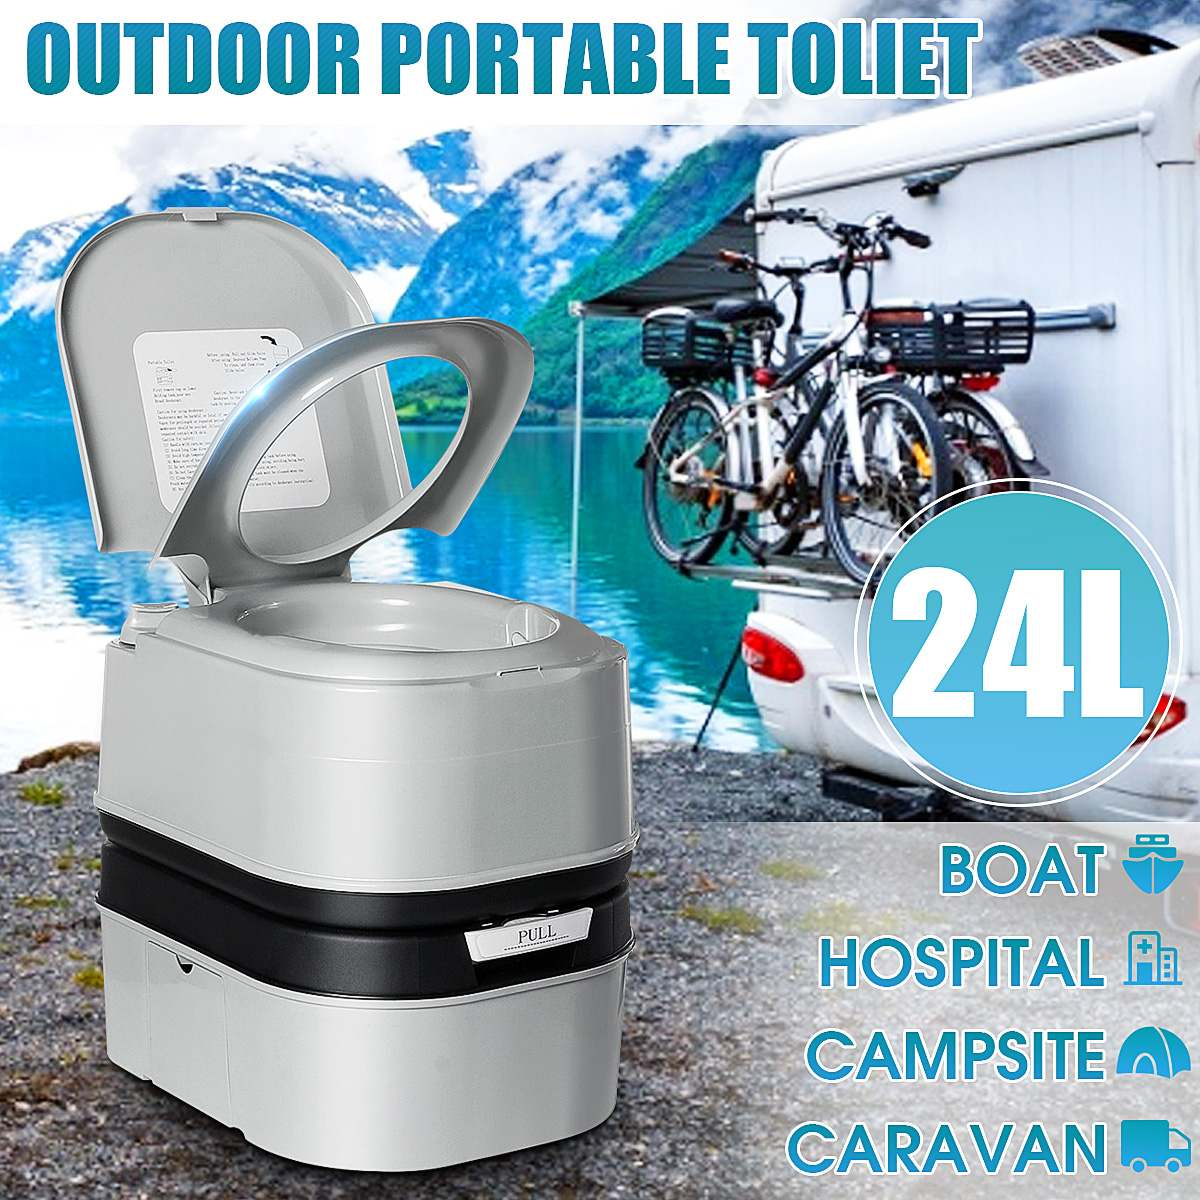 24L Portable Toilet Camping Potty Loo Outdoor Camping Caravan RV Boat Picnic Fishing Festival Accessories Commode Movable Toilet